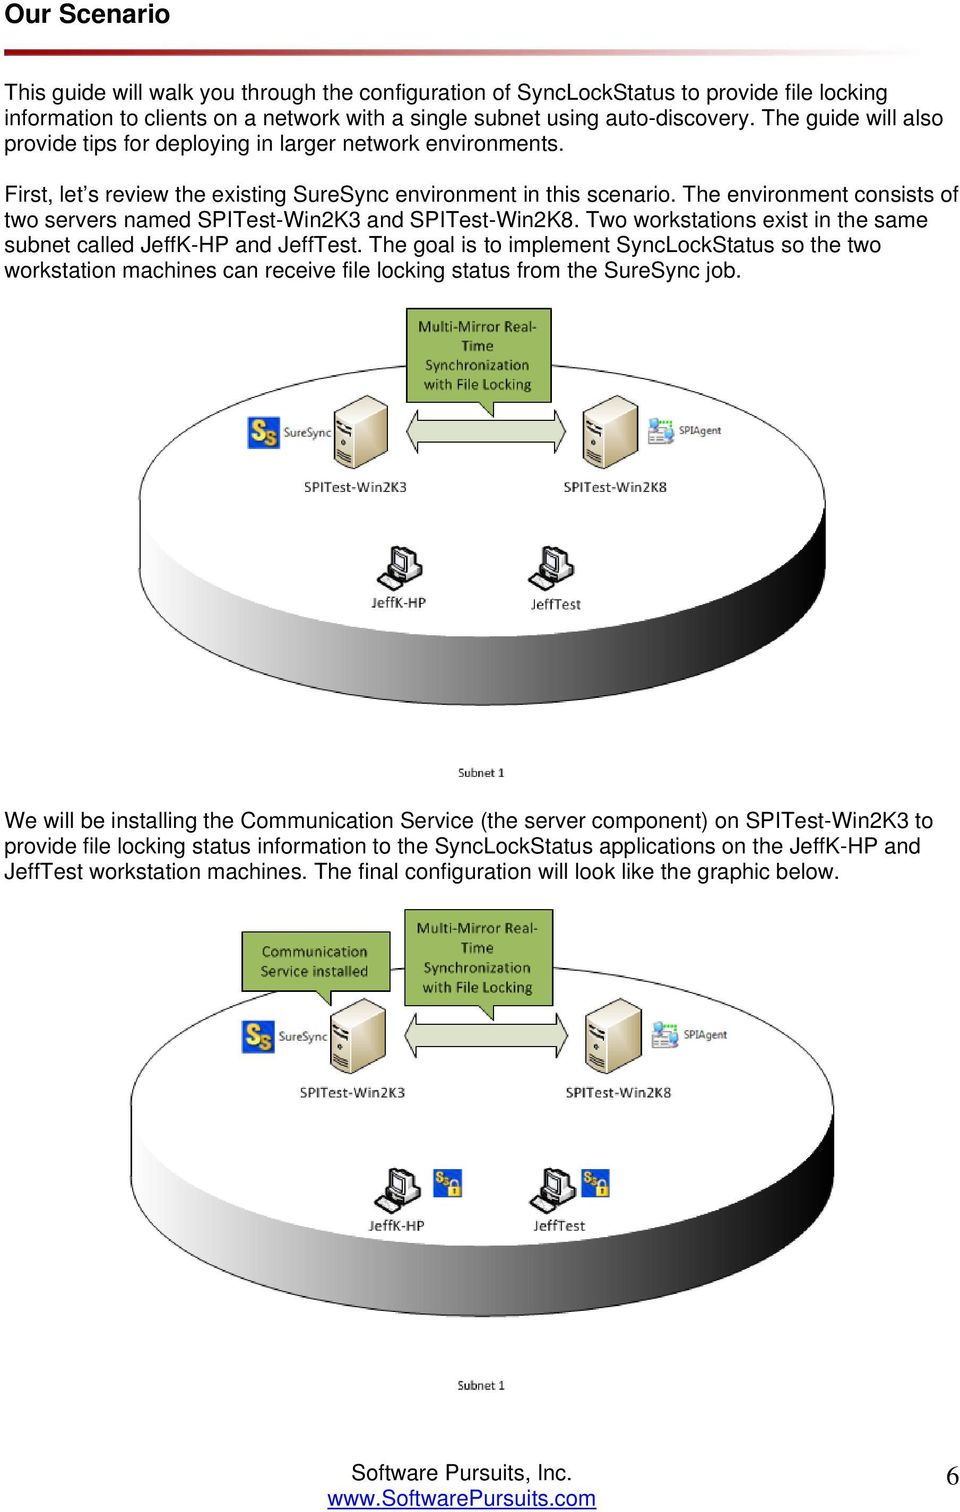 The environment consists of two servers named SPITest-Win2K3 and SPITest-Win2K8. Two workstations exist in the same subnet called JeffK-HP and JeffTest.